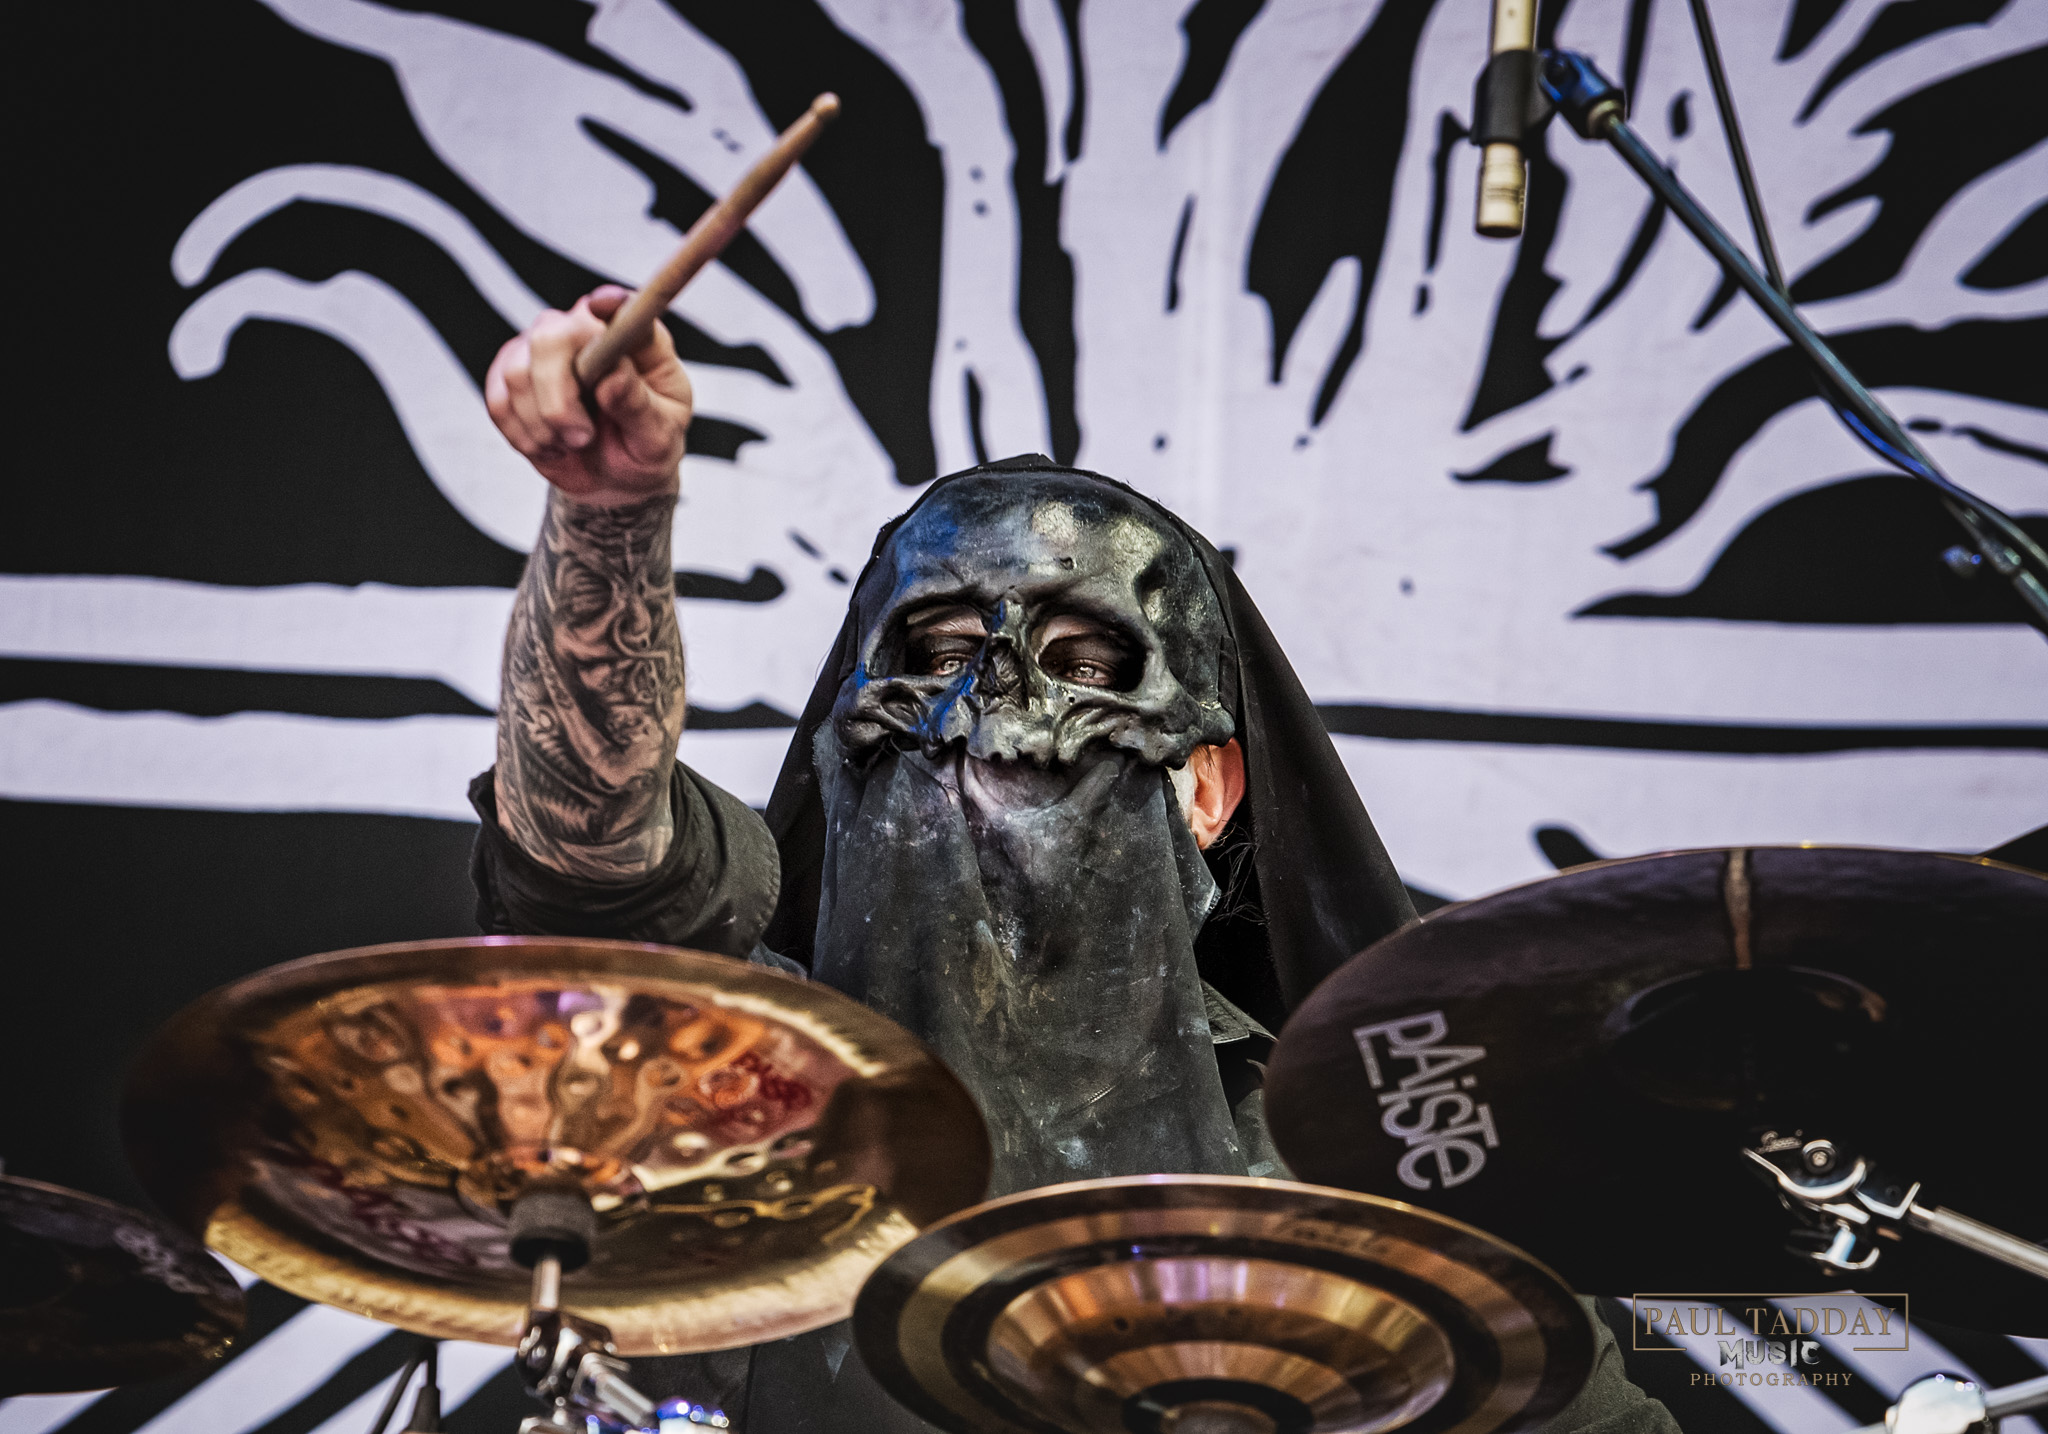 behemoth - download melbourne - march 2019 - web - paul tadday photography - 2.jpg